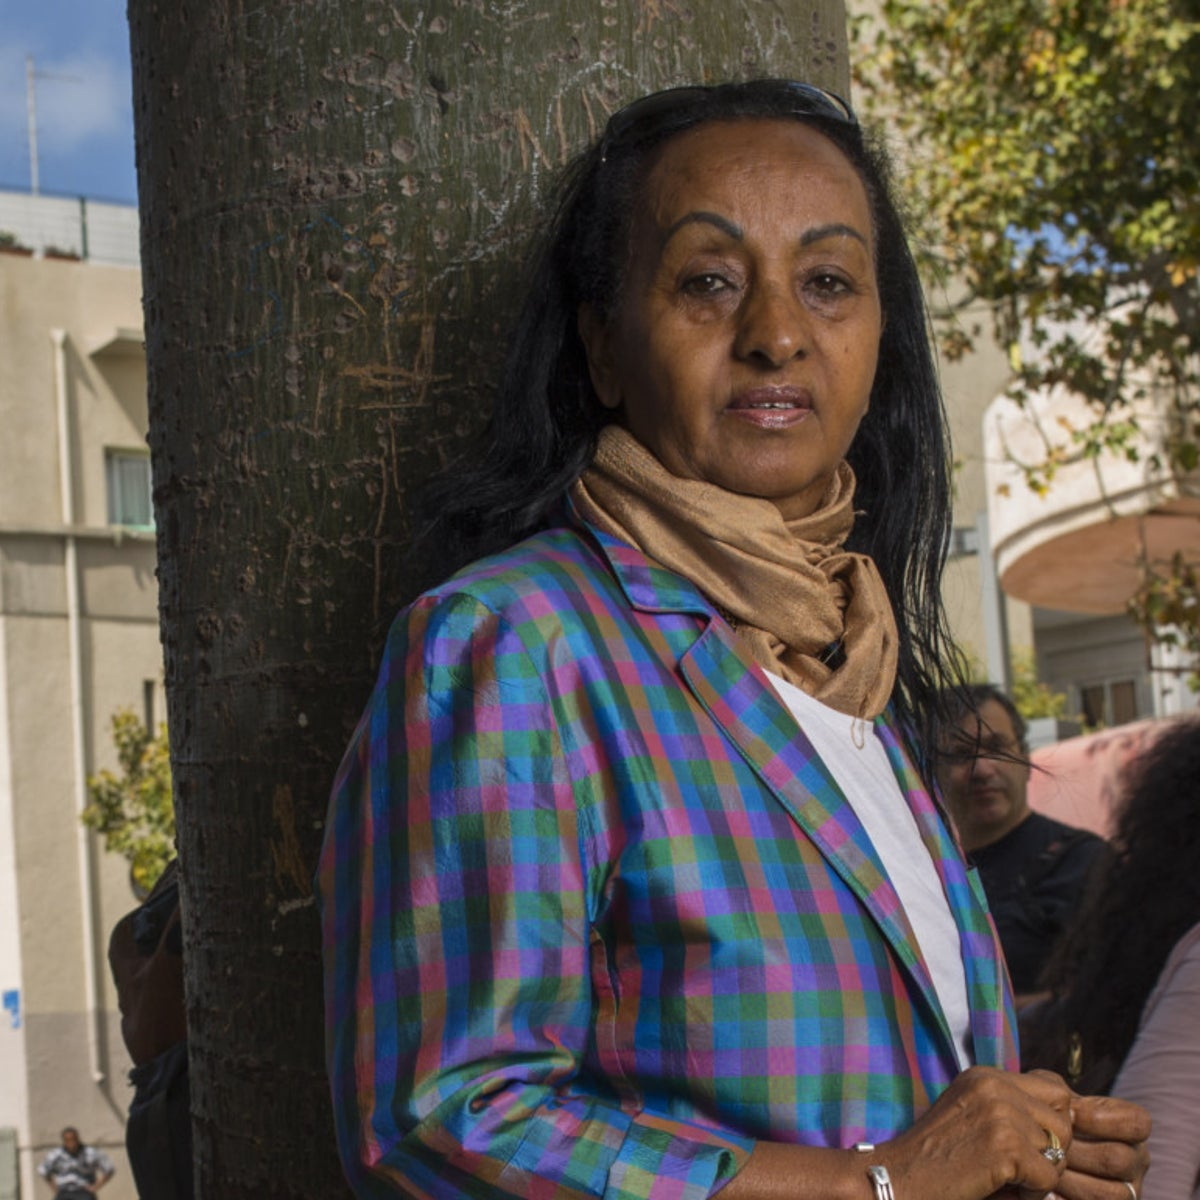 Alganesh Fessaha in Tel Aviv. 'Many of the Eritreans who are now in Israel and are candidates for deportation are survivors of this horror in the Sinai.'